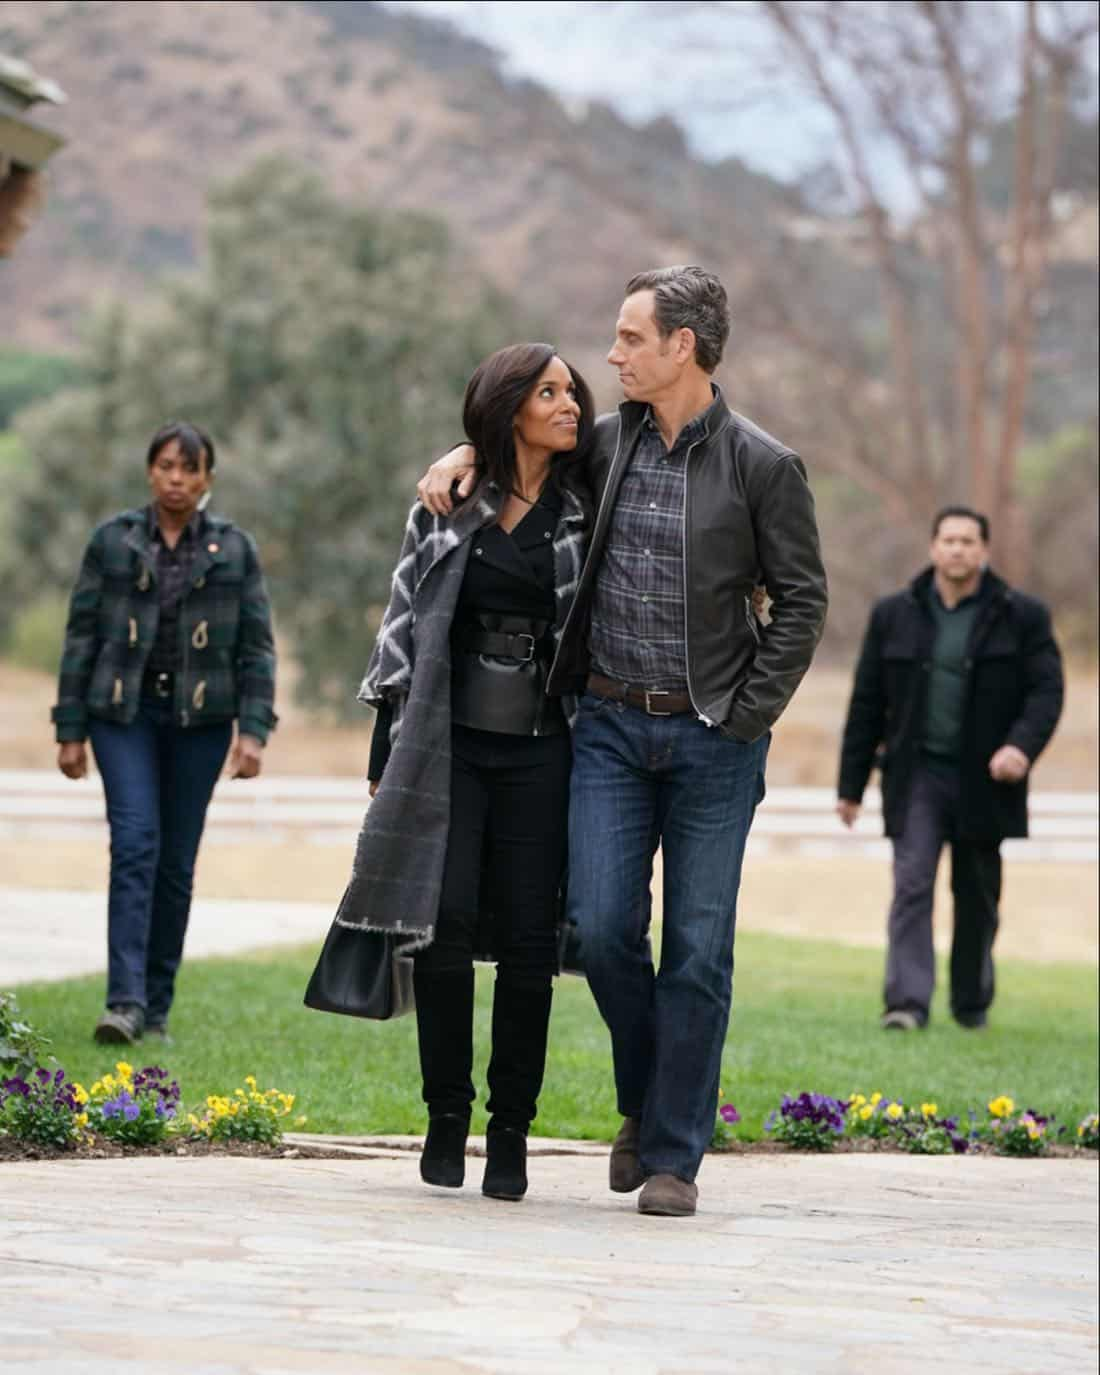 """SCANDAL - """"The People v. Olivia Pope"""" - When Olivia agrees to join Fitz in Vermont for what she thinks will be a relaxing getaway, she is shocked to find that her closest friends have orchestrated a relentless intervention. Back in Washington, Cyrus finally reveals his suspicions to Mellie about Olivia and Jake's extracurricular activities, on """"Scandal,"""" airing THURSDAY, FEB. 1 (9:00-10:00 p.m. EST), on The ABC Television Network. (ABC/Mitch Haaseth)<br />"""